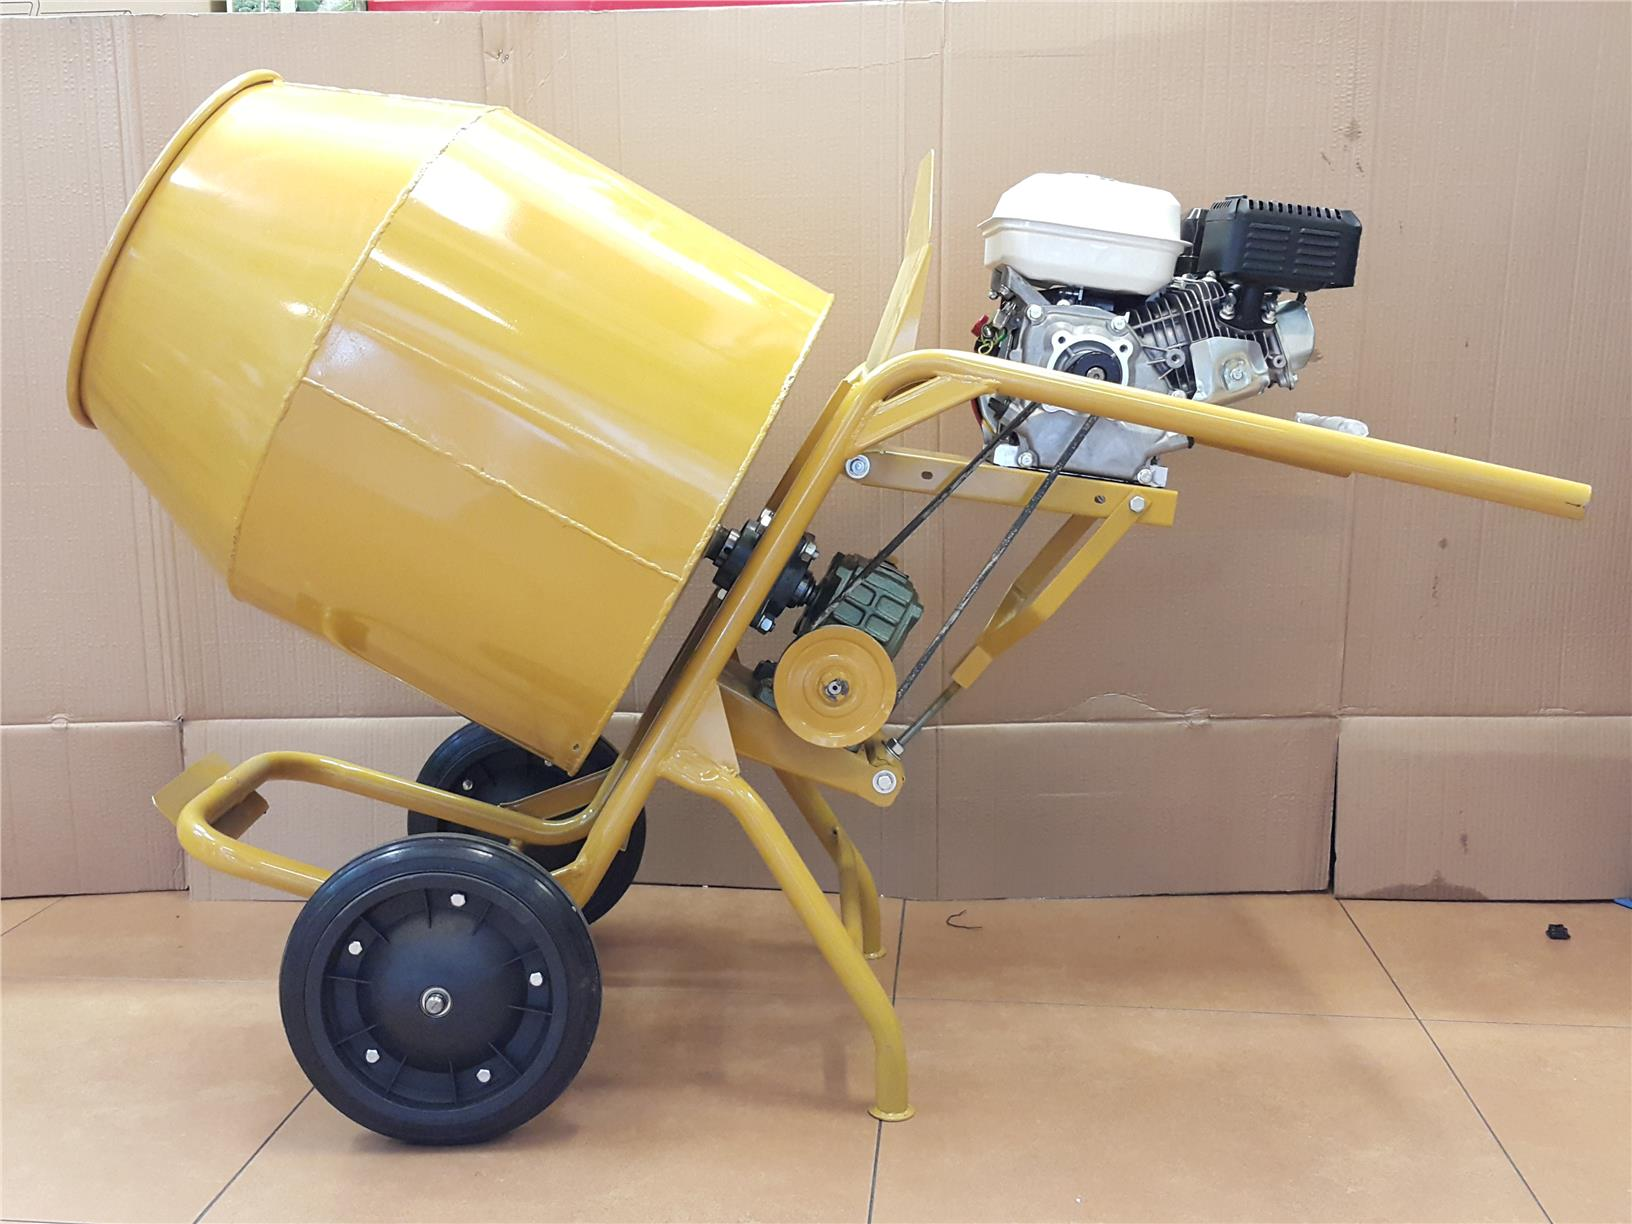 3T CONCRETE MIXER C/W GASOLINE ENGINE 5.5HP ID338983